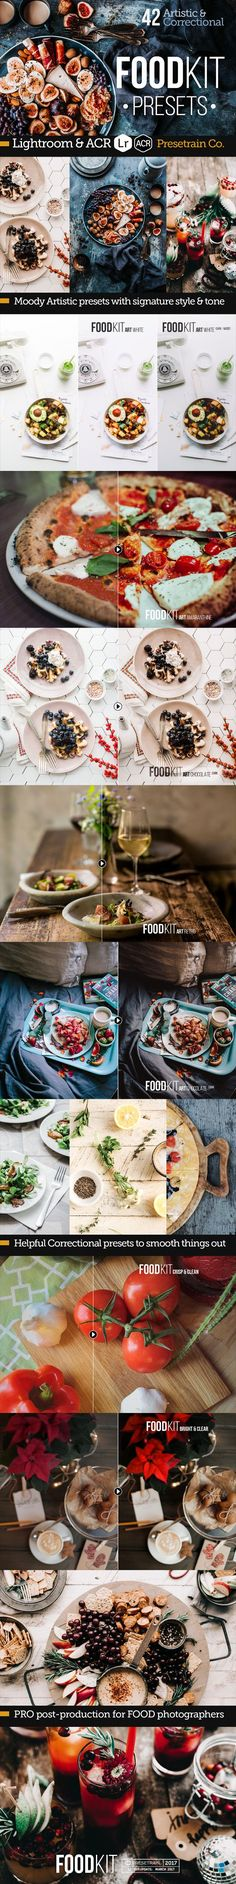 FoodKit - 42 Food Presets for Lightroom & ACR by Presetrain FoodKit is a must-have collection of professional presets for food photographers, wedding photographers, food bloggers or small bu